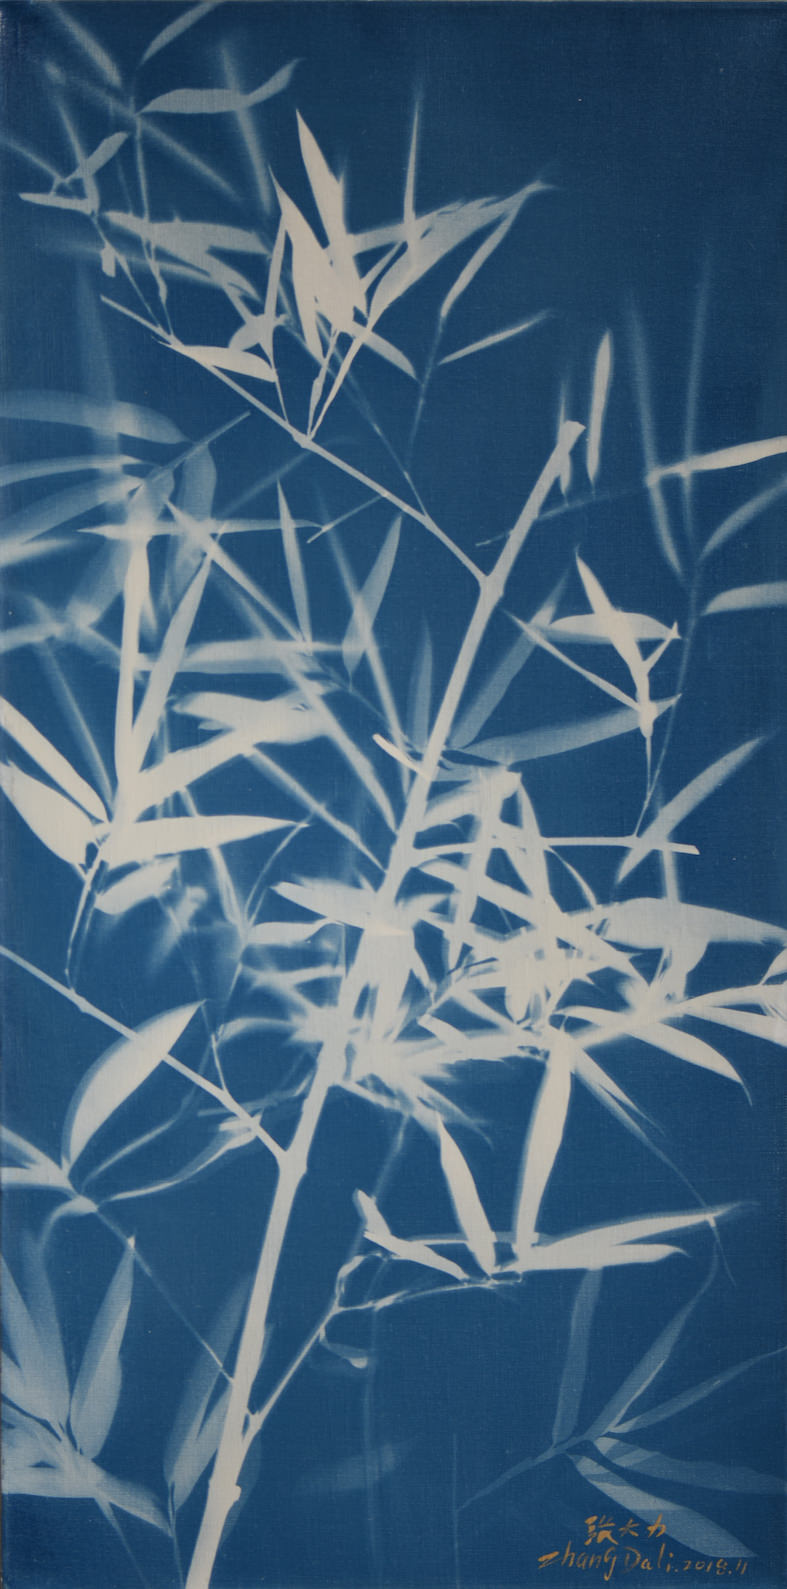 Zhang Dali, Bambù (80X40cm) Cyanotype on Canvas 2018